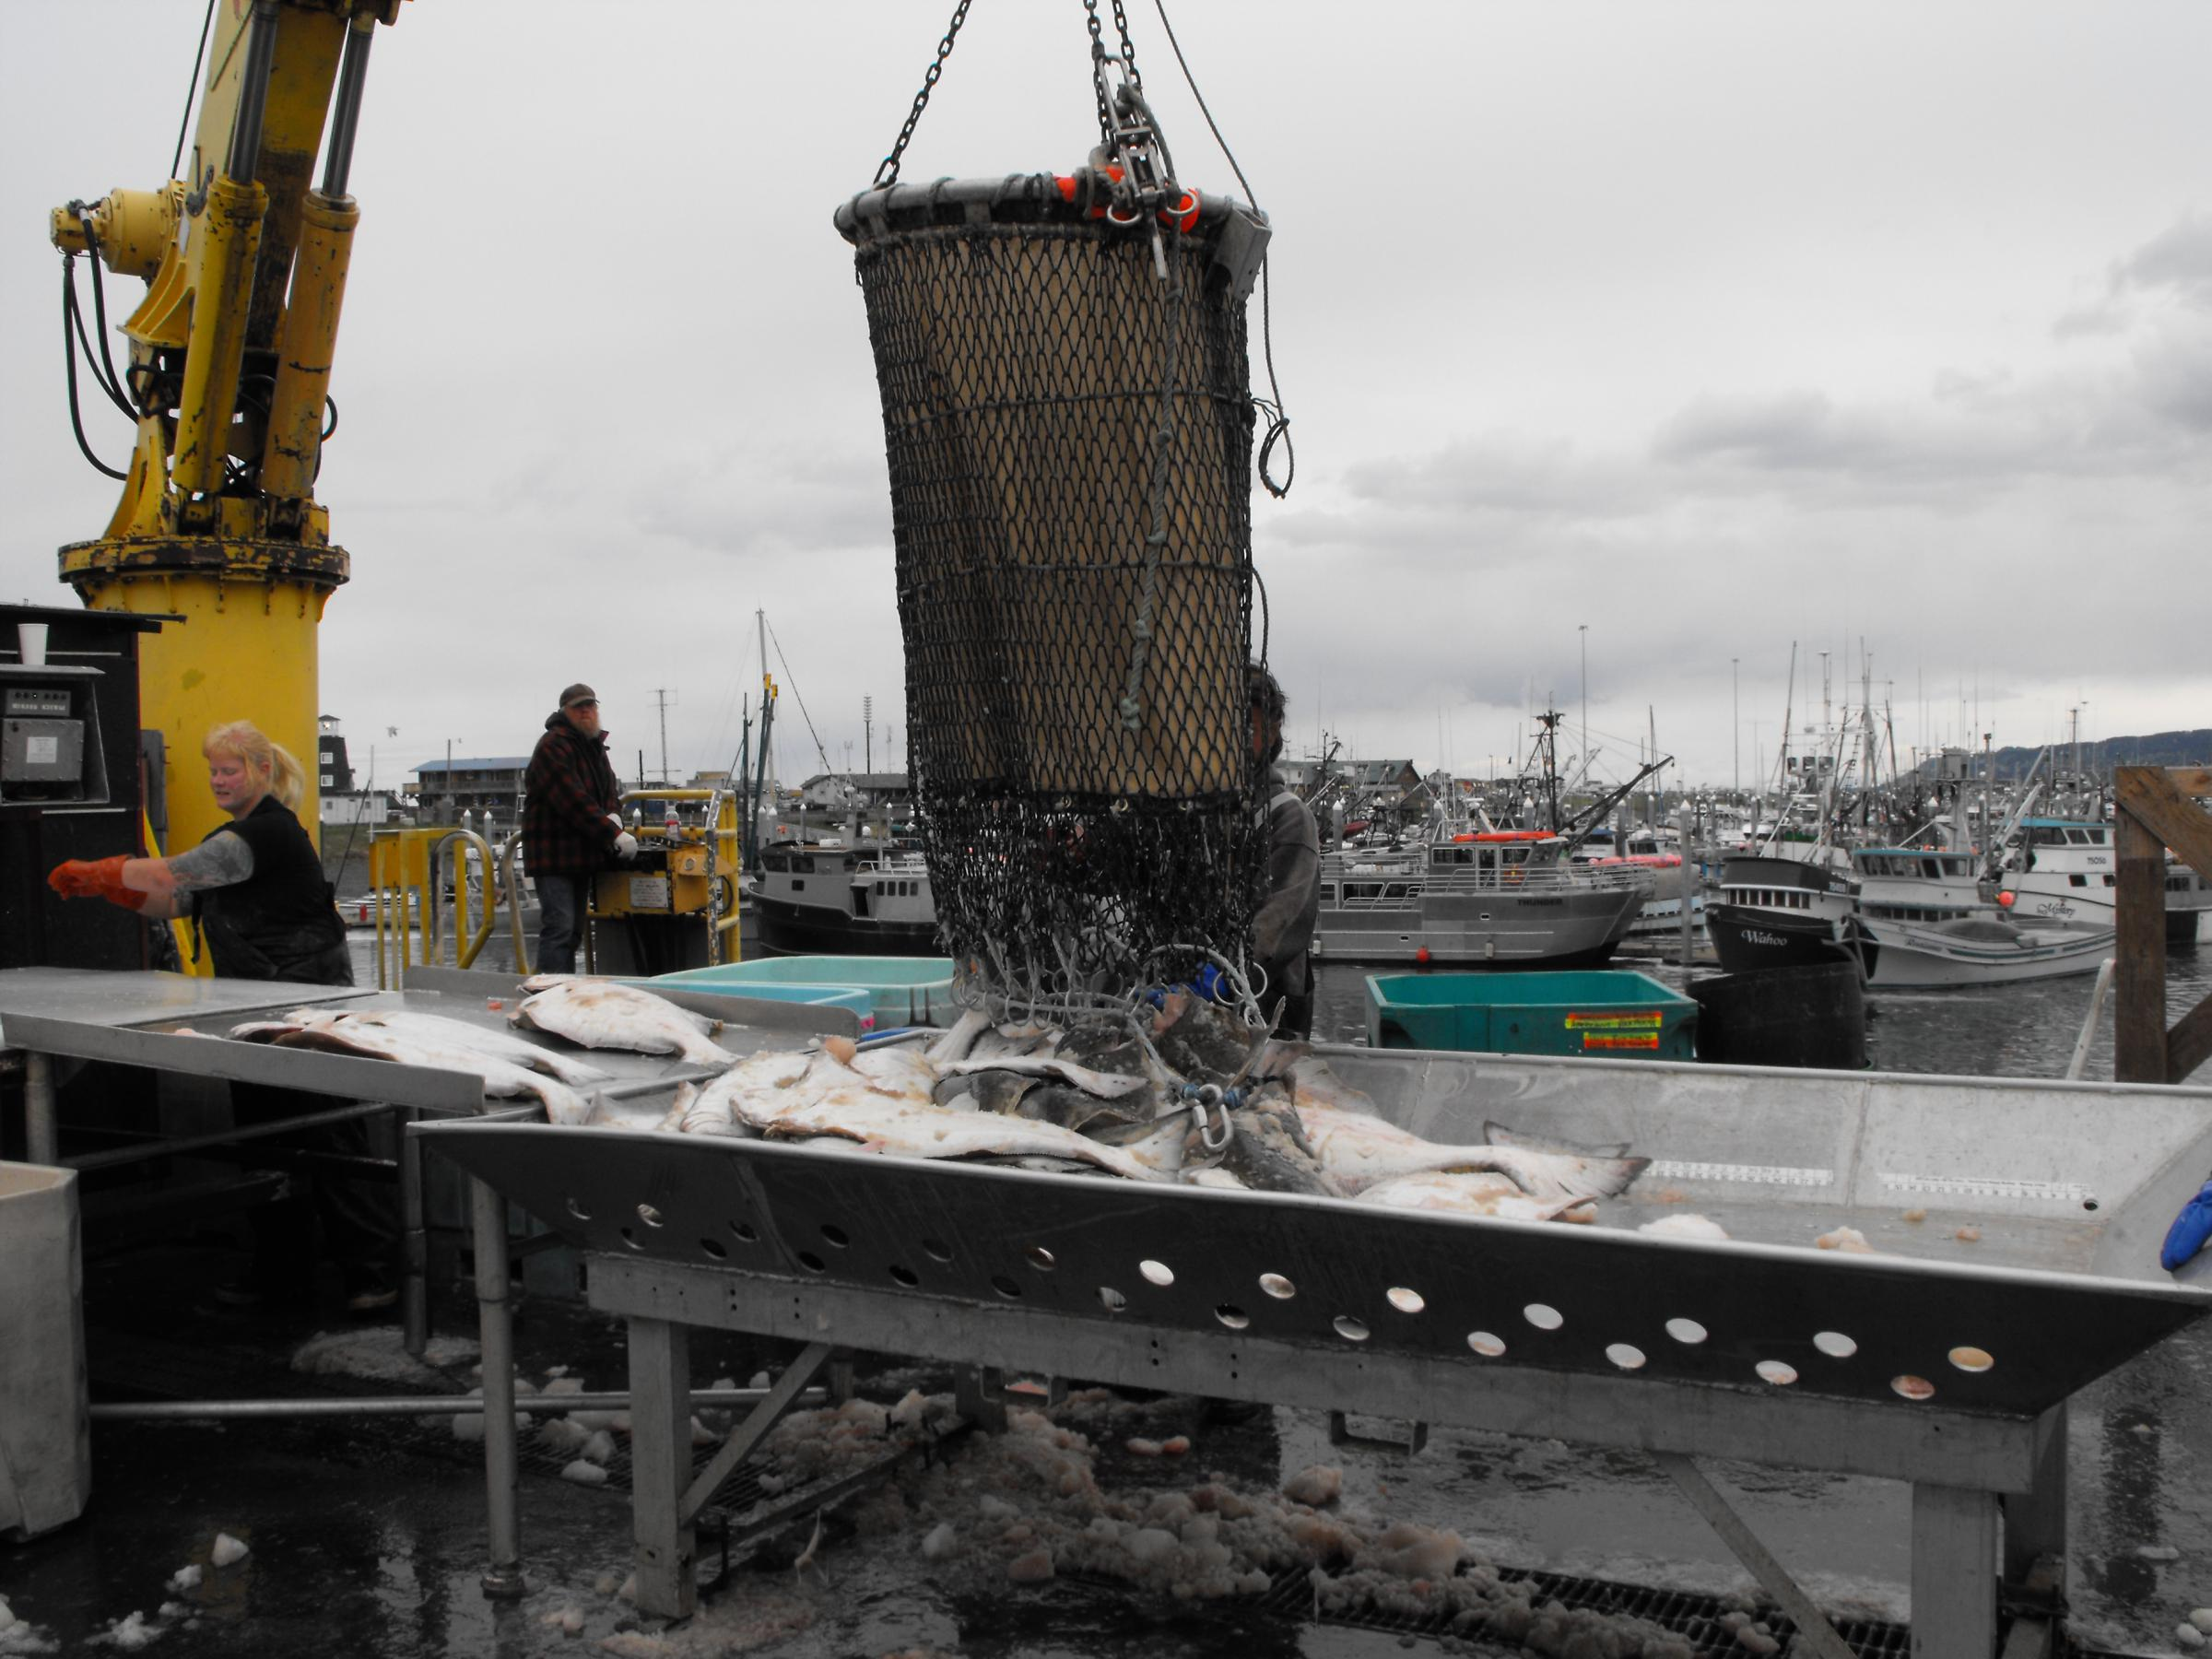 Pacific halibut is unloaded in Homer. (Photo courtesy Rudy Gustafson)